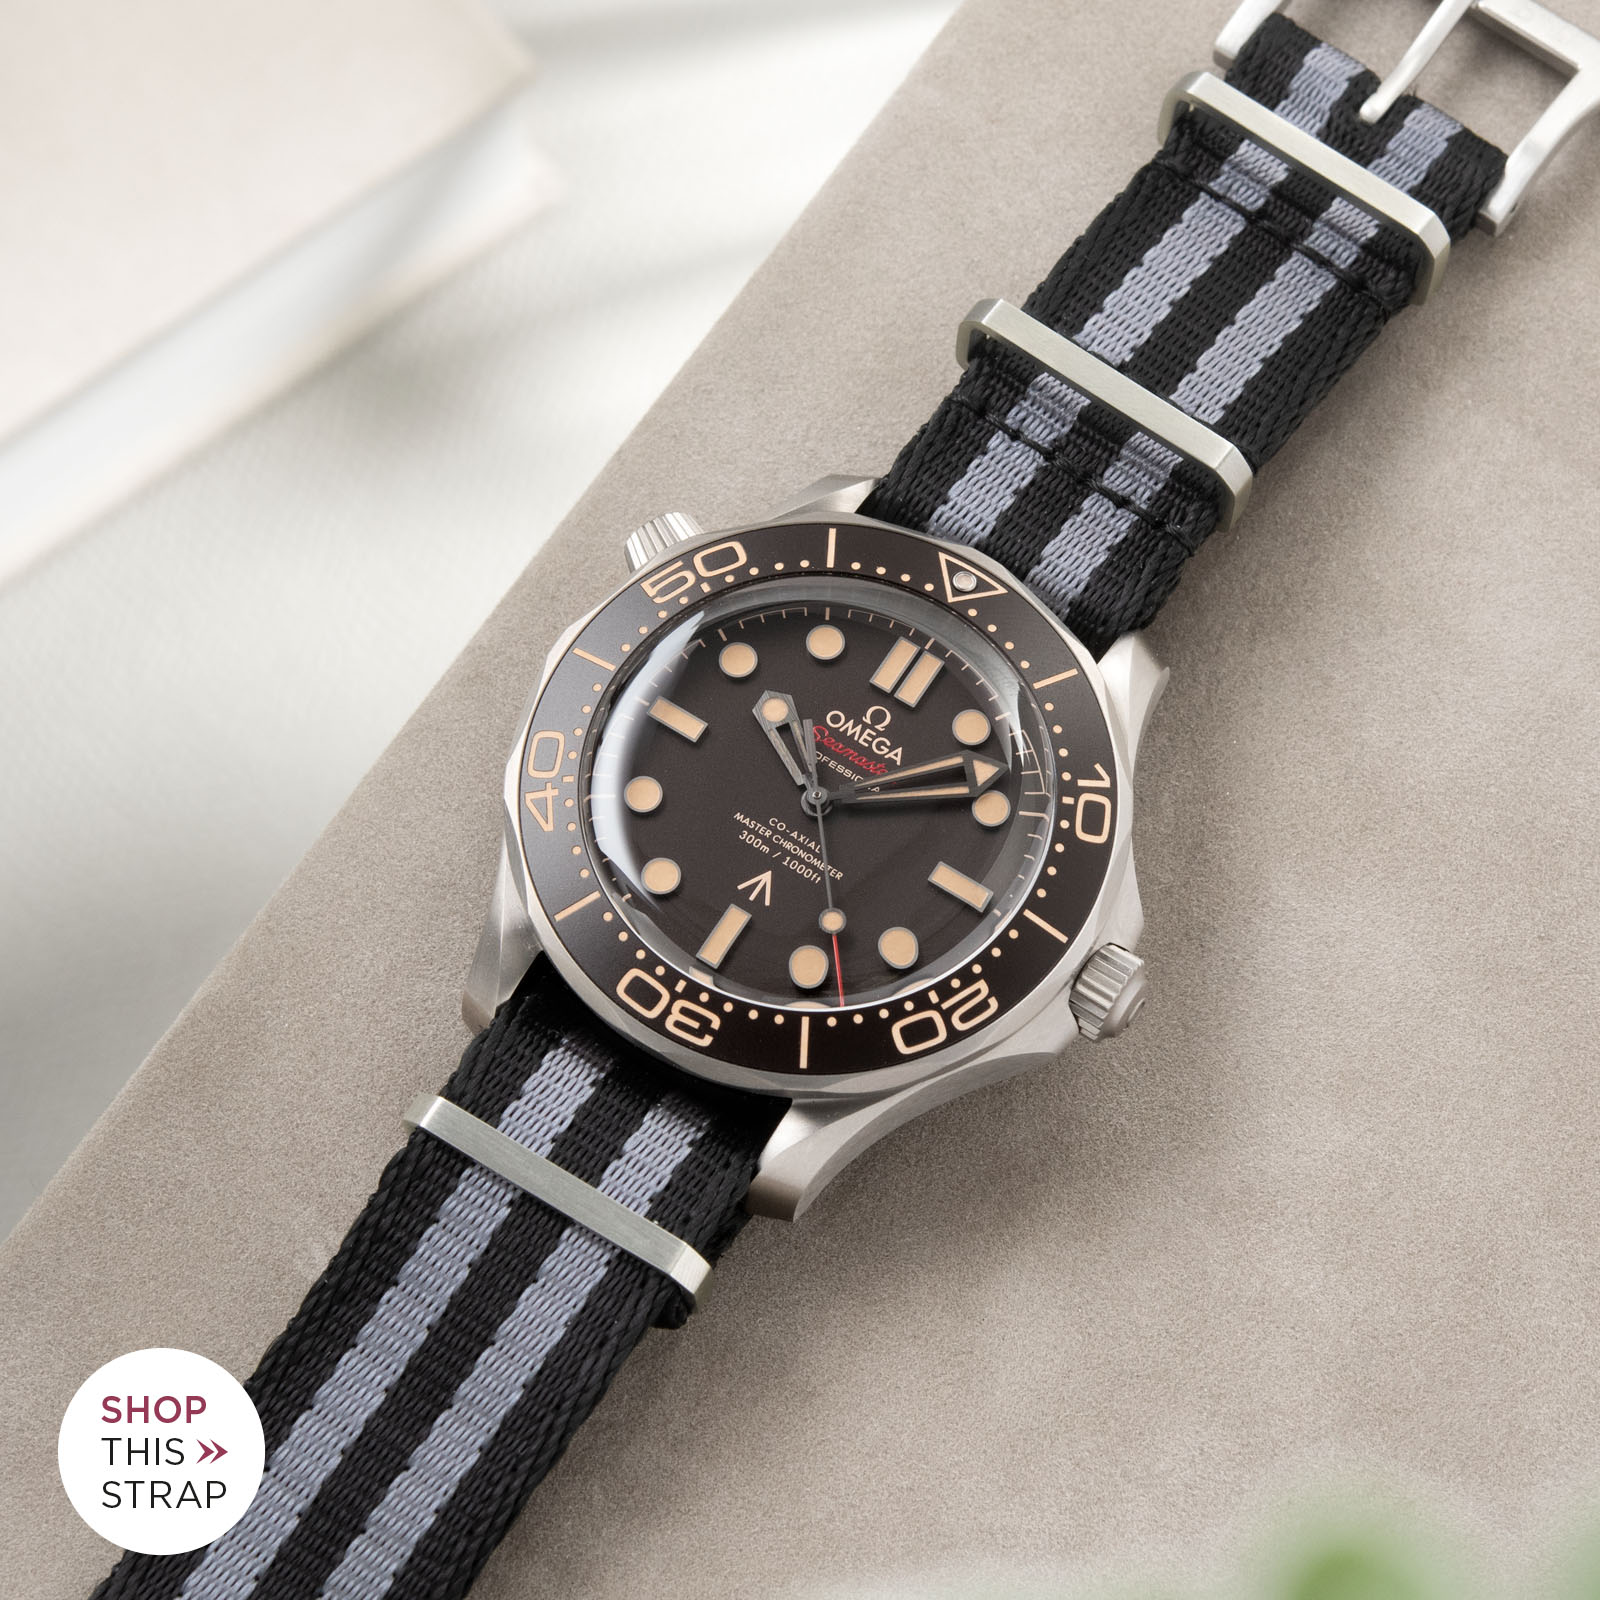 Bulang and Sons_Strapguide_Omega Seamaster_DELUXE NYLON NATO WATCH STRAP BLACK TWO STRIPES GREY_001